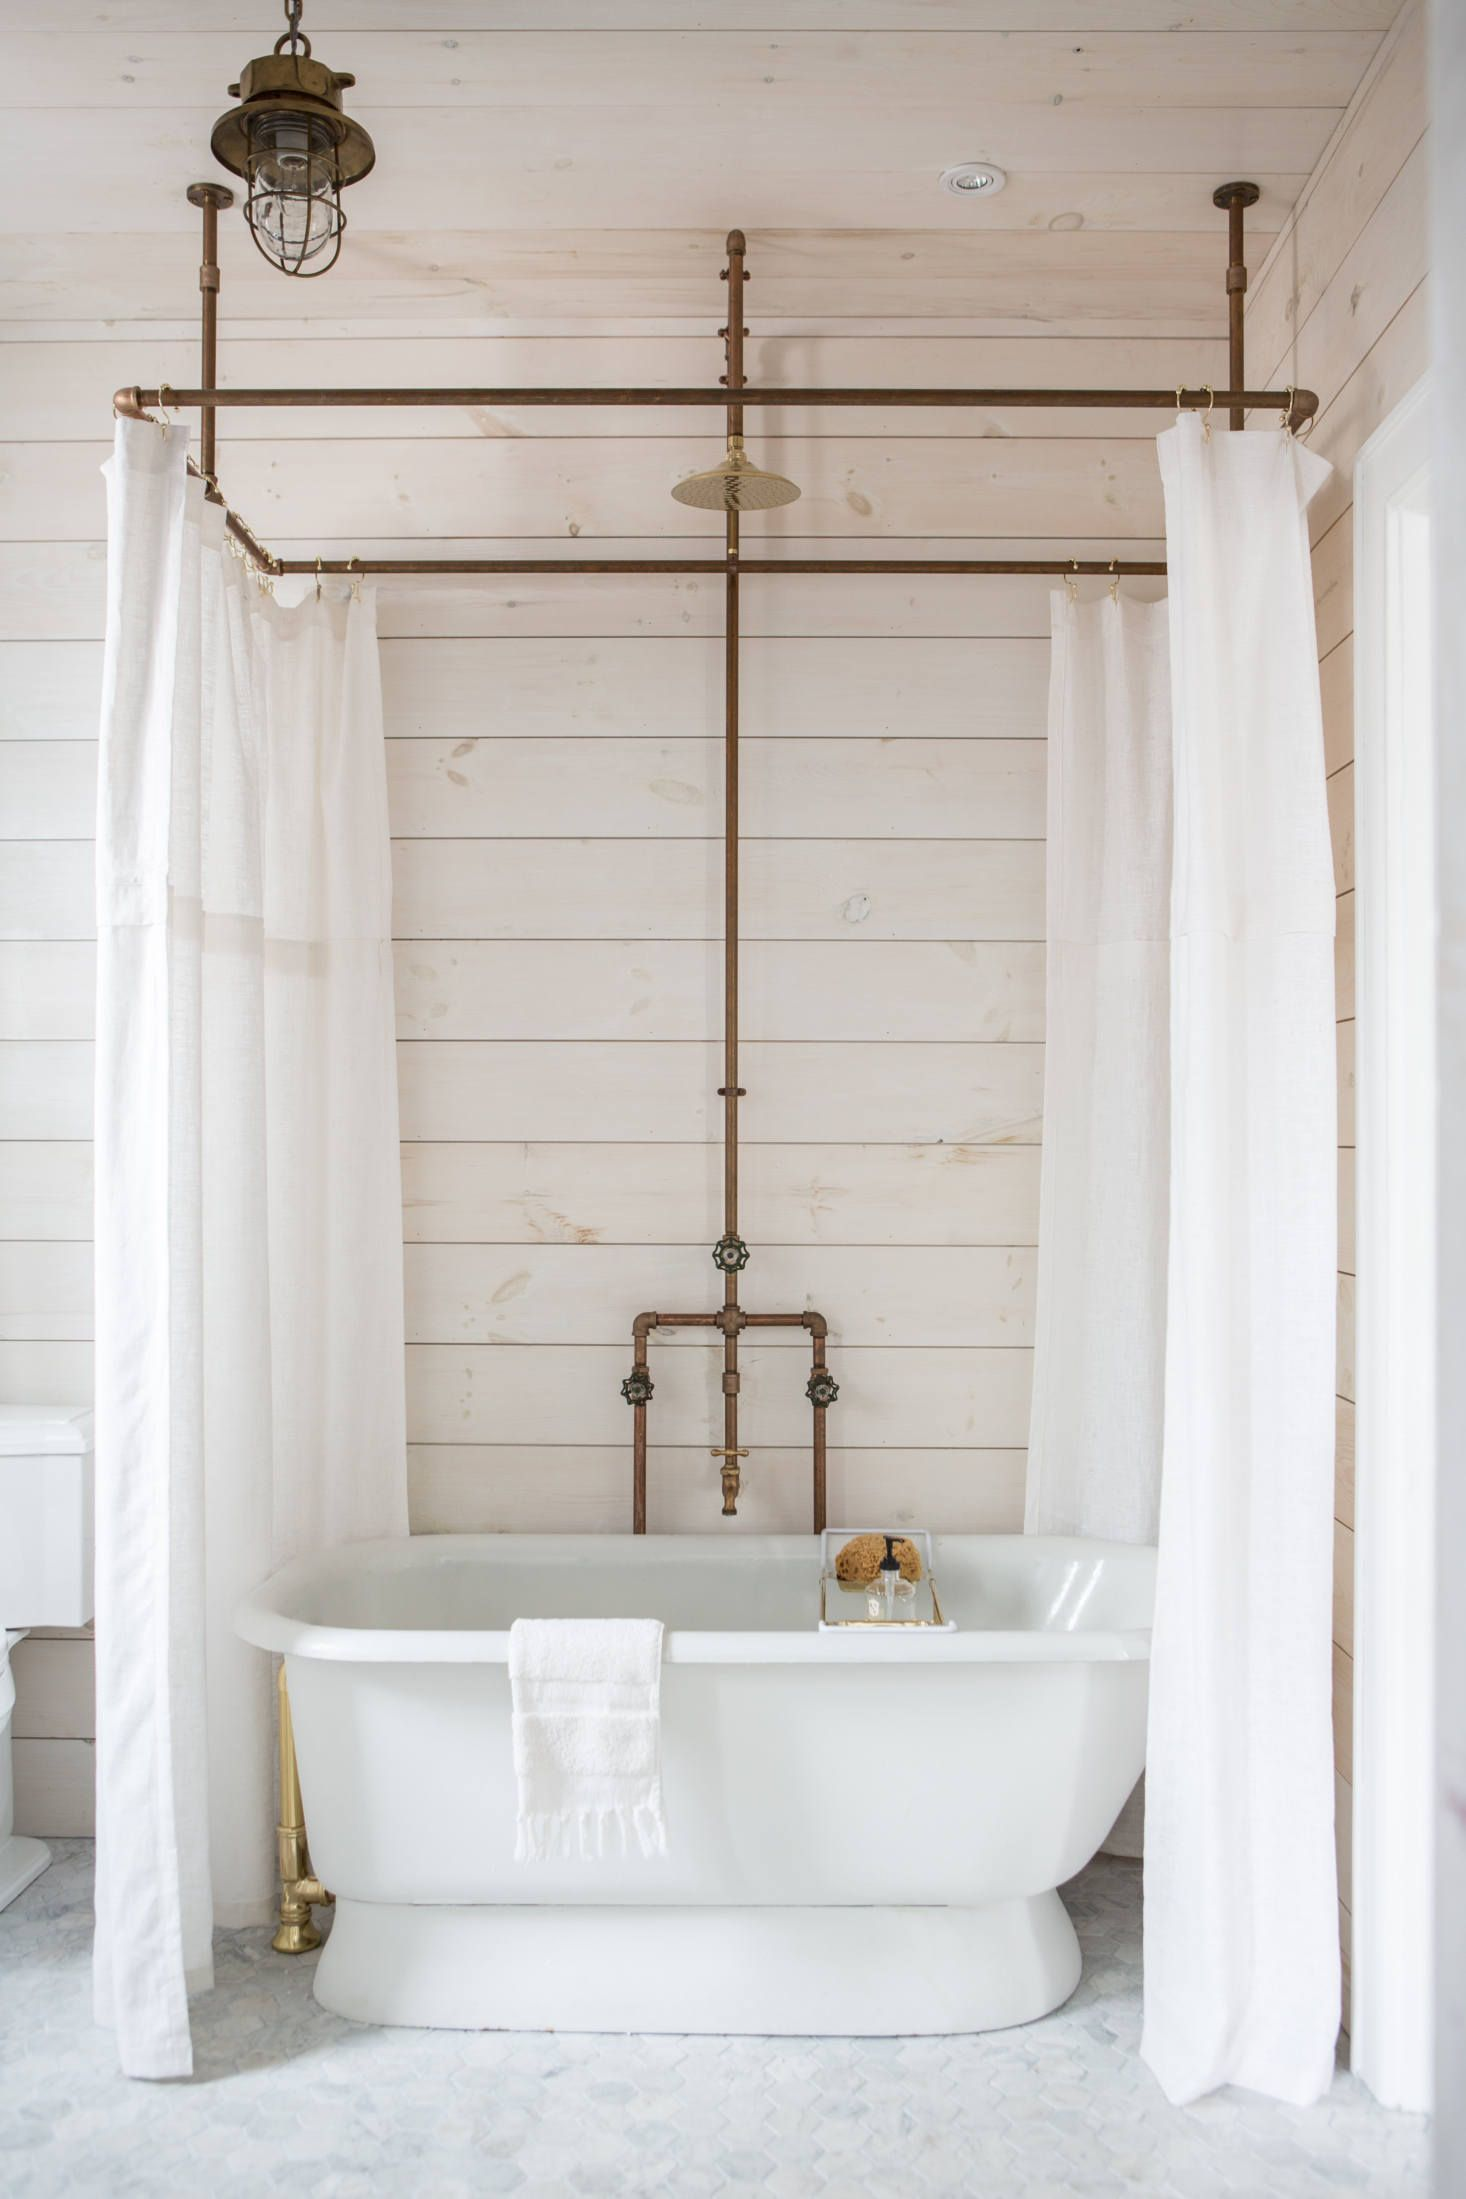 A Diy Shower Curtain Hoop Made From Brass Pipes By Zio Sons Clawfoot Tub Shower Diy Shower Curtain Shower Tub